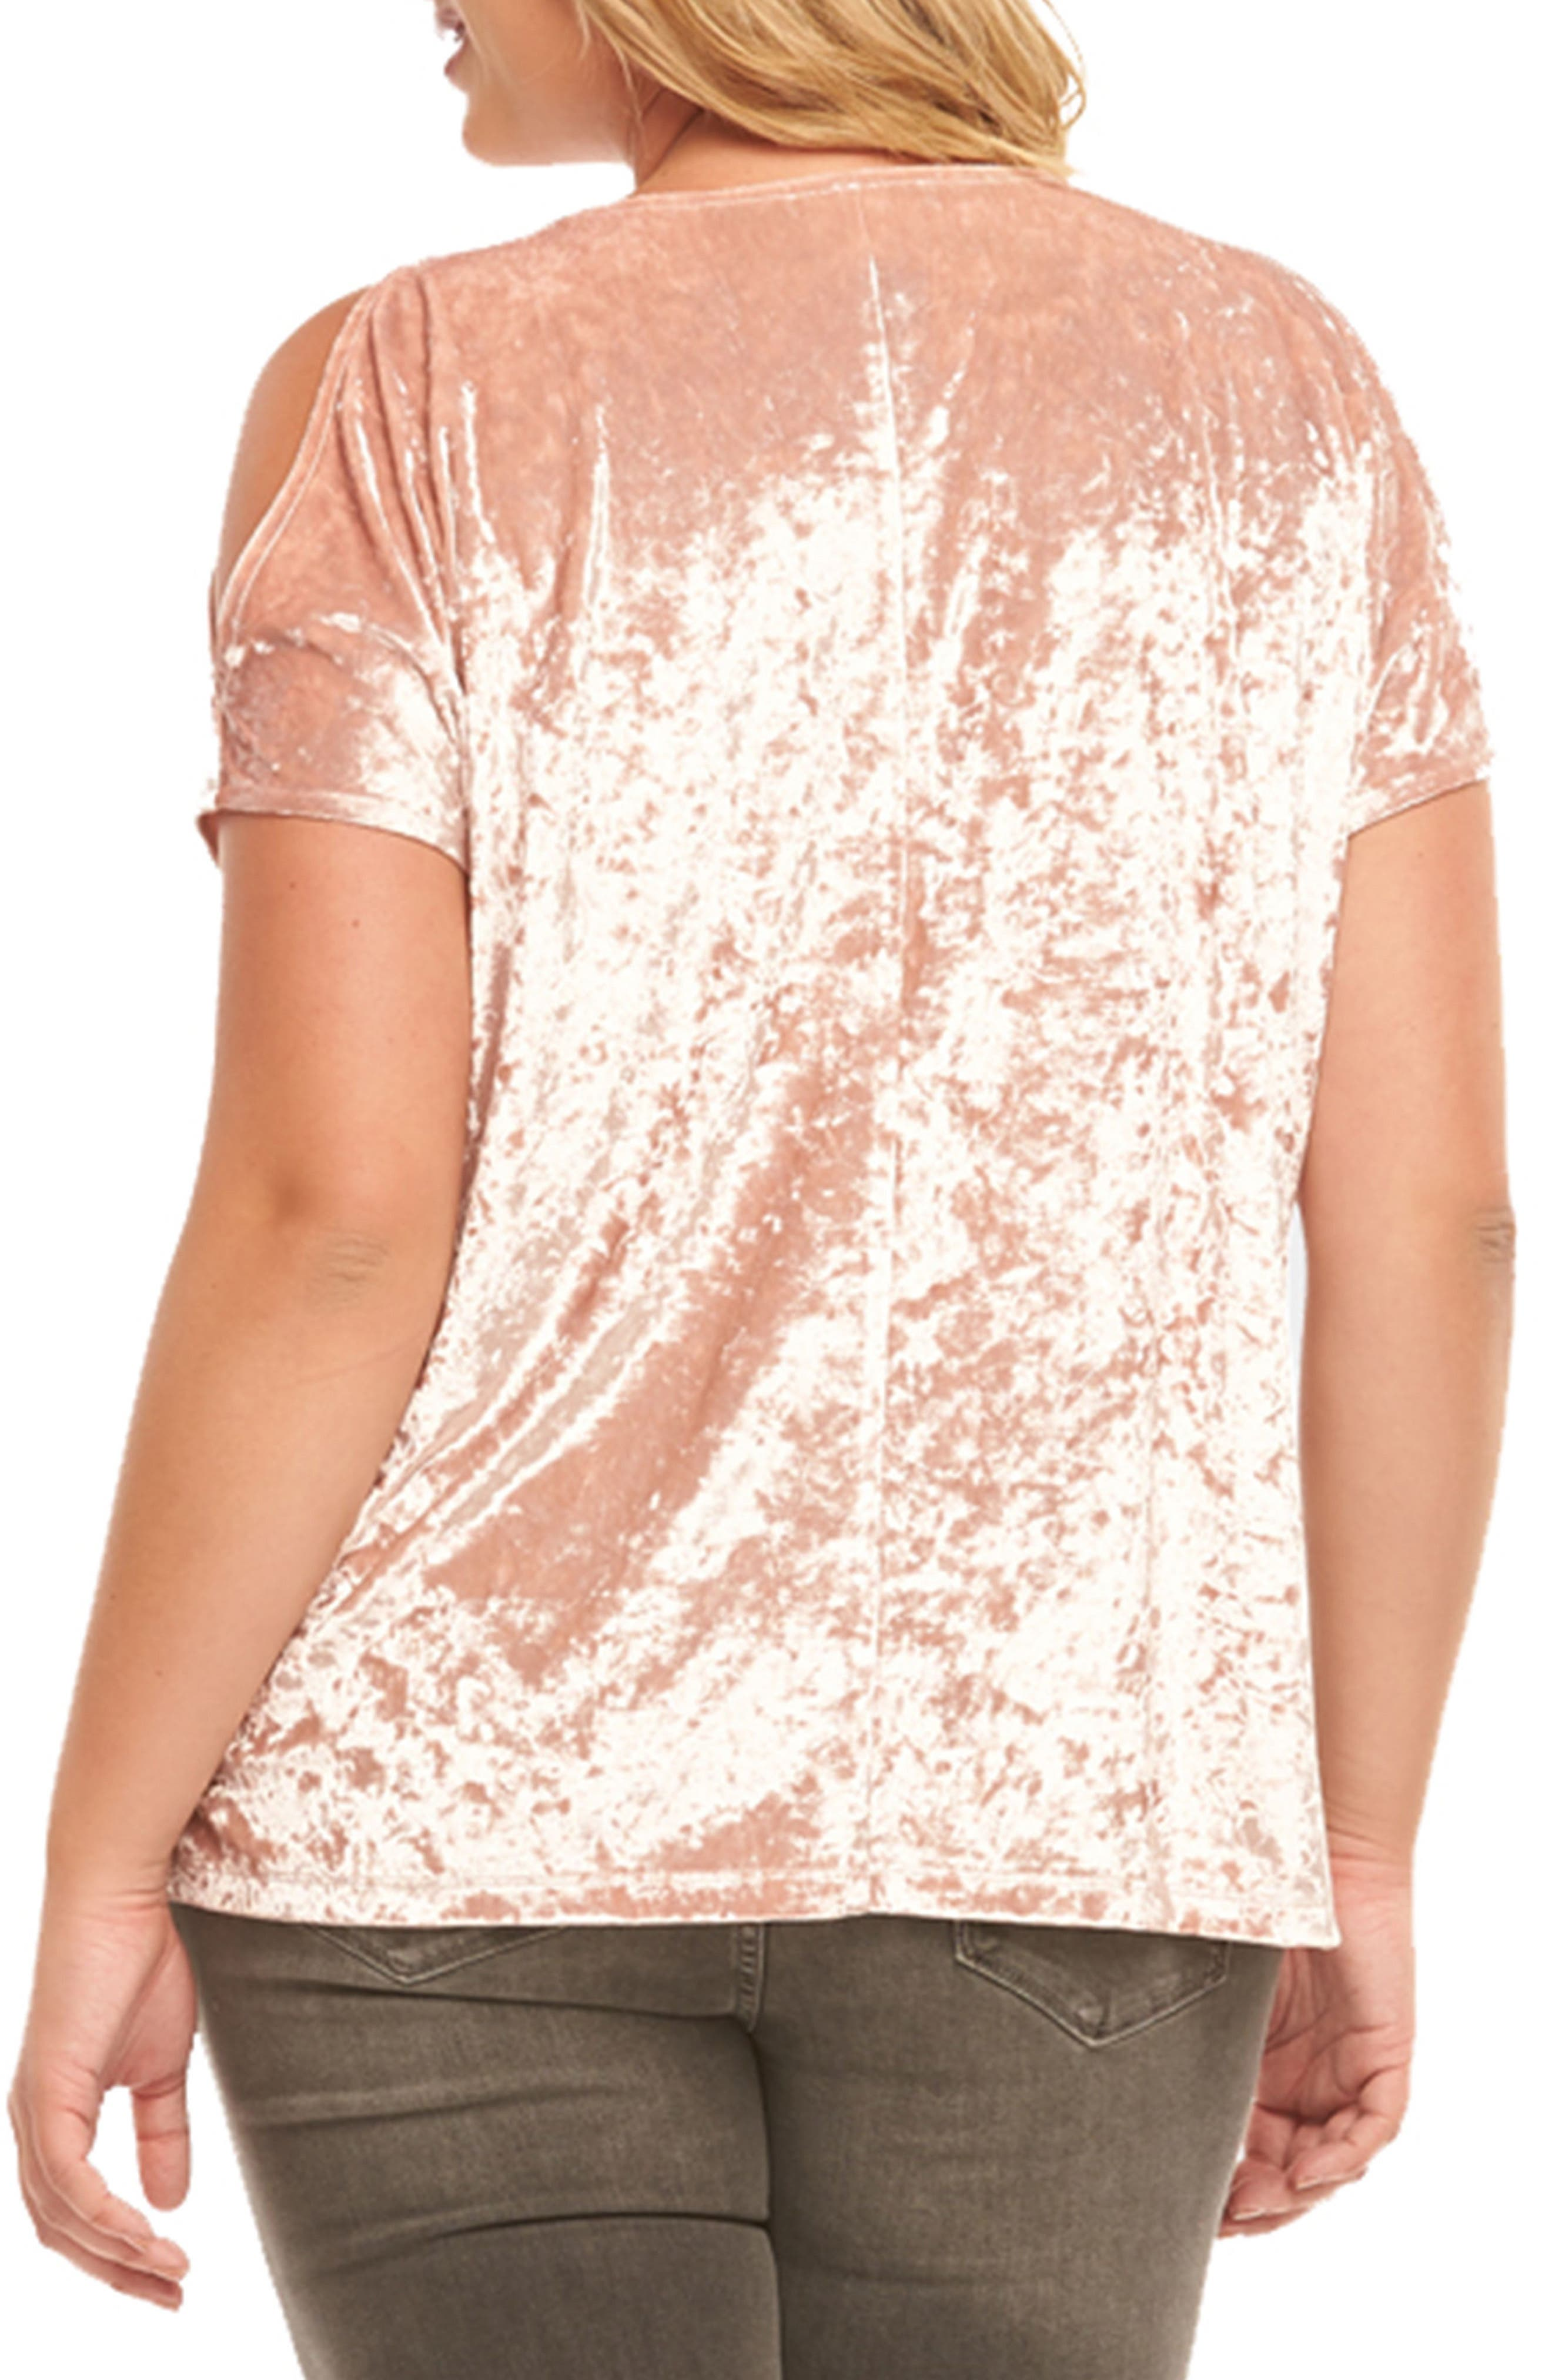 Rocky Cold Shoulder Top,                             Alternate thumbnail 2, color,                             Dusty Rose